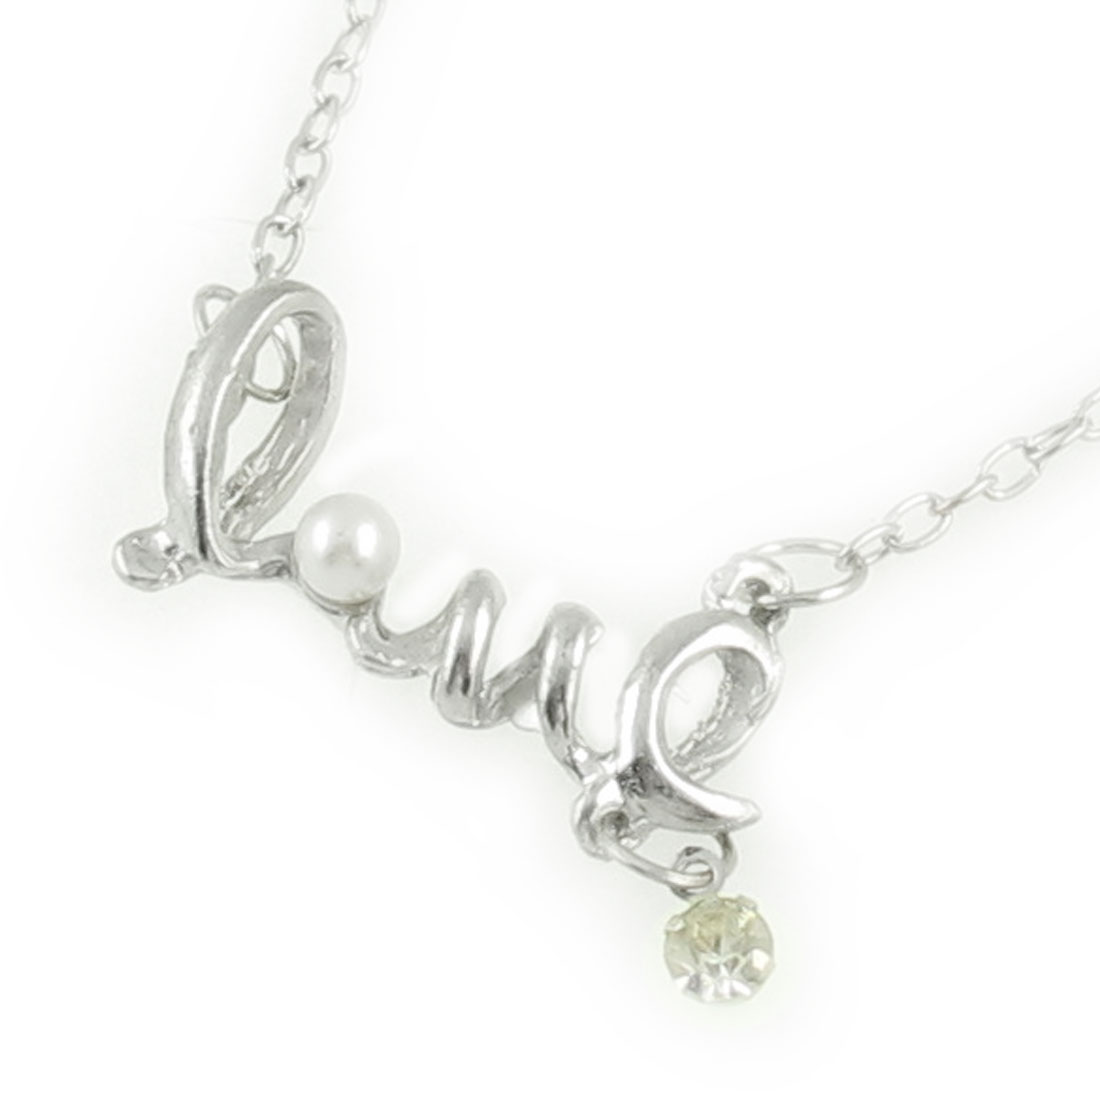 Lady Love Letter Shape Faux Pearl Decor Pendant Silver Tone Chain Necklace